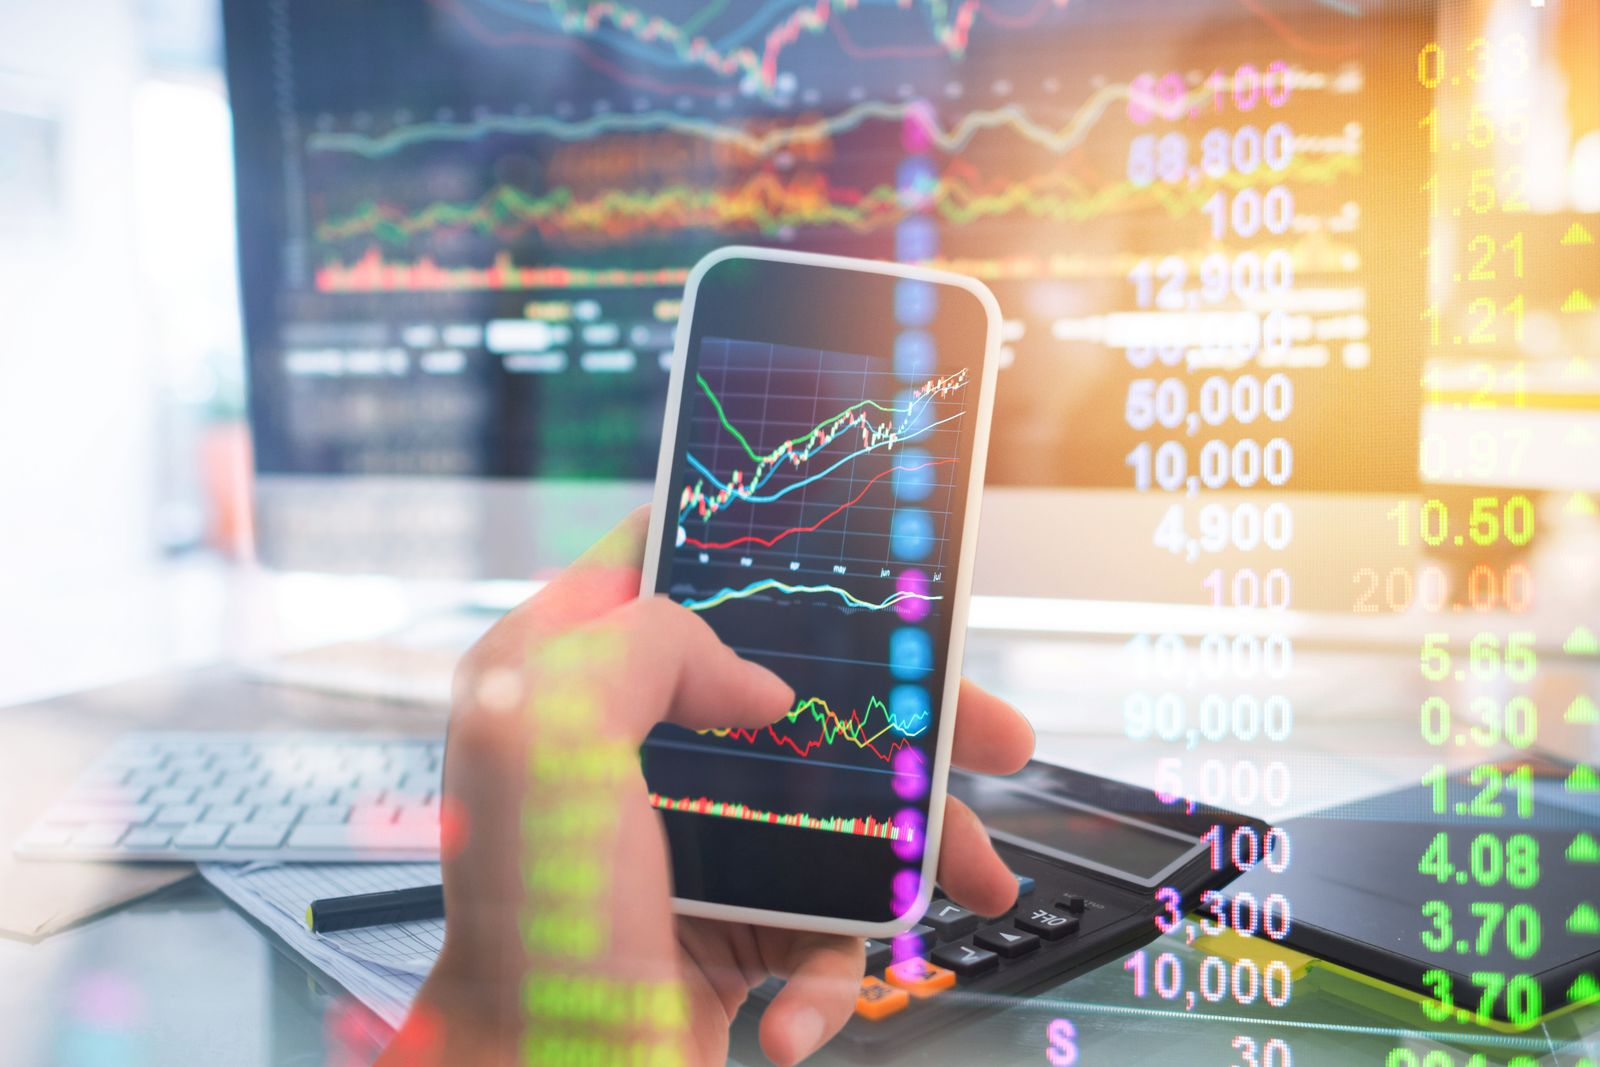 Investment theme stockmarket and finance business analysis stockmarket with digital tablet